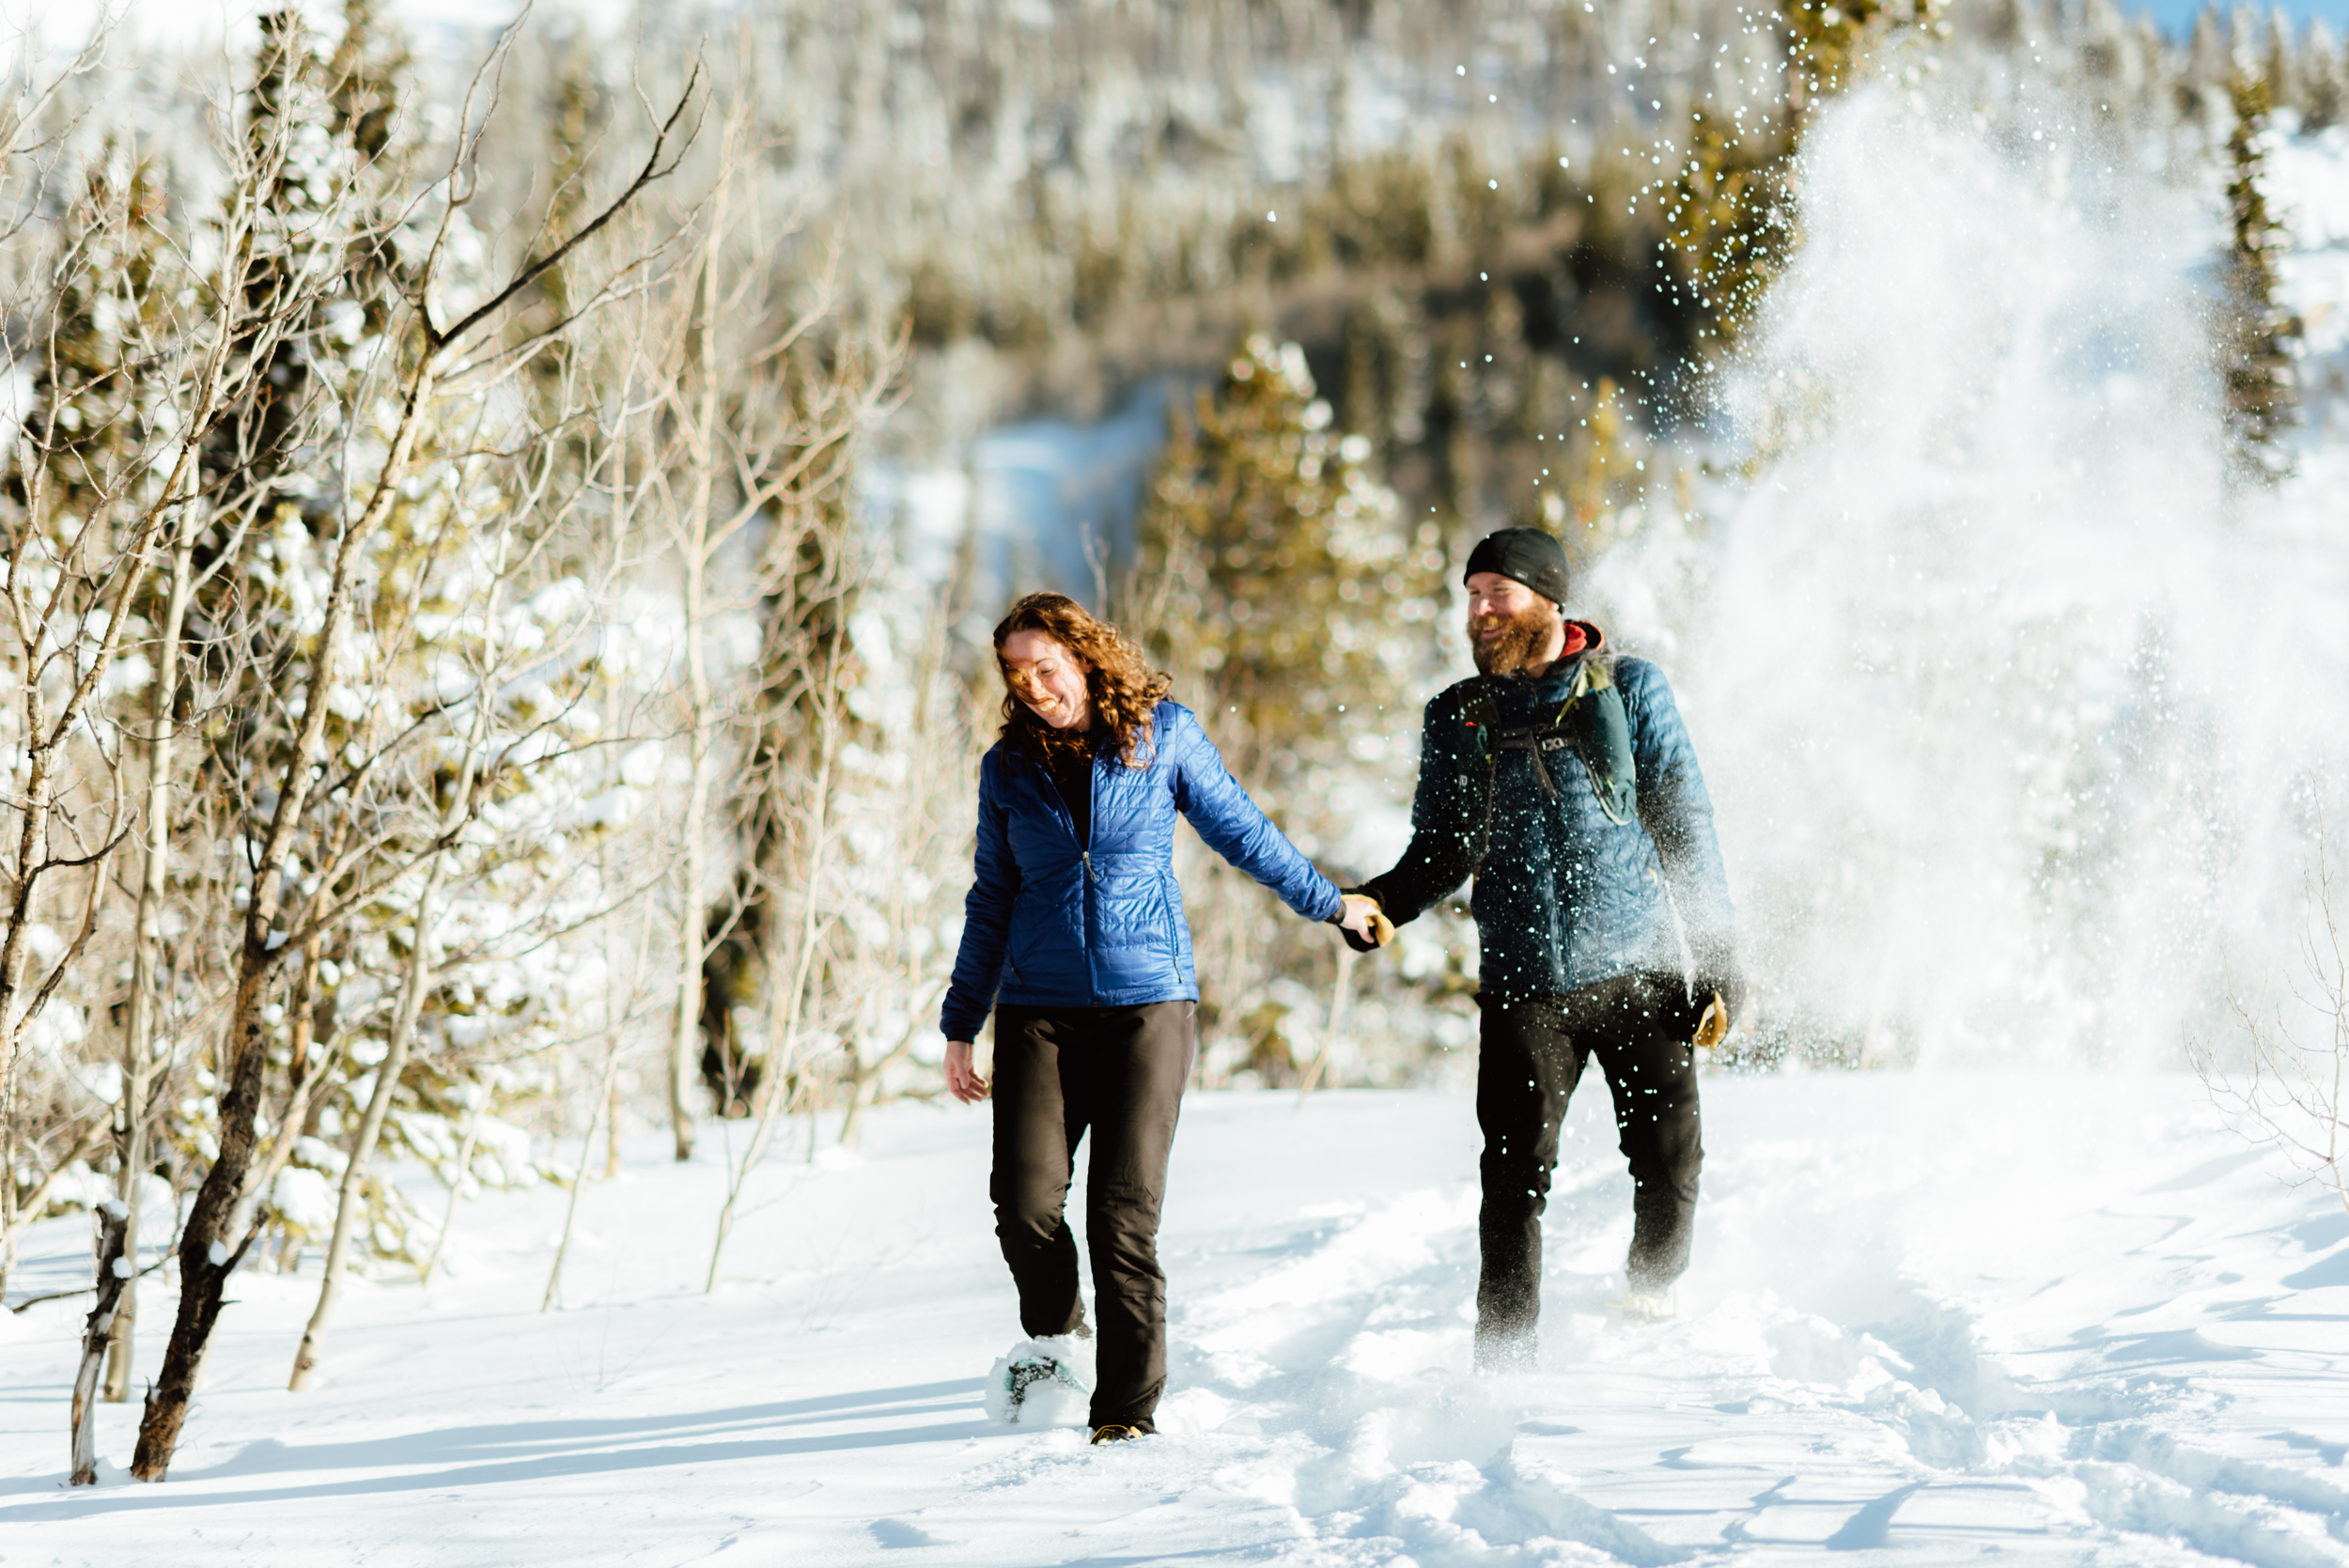 I want to have my engagement photoshoot at Lost Lake in Colorado! I absolutely love the idea of doing a snowshoeing session in the winter! So romantic...| Intimate engagement photos by adventurous Colorado wedding photographer, Maddie Mae.